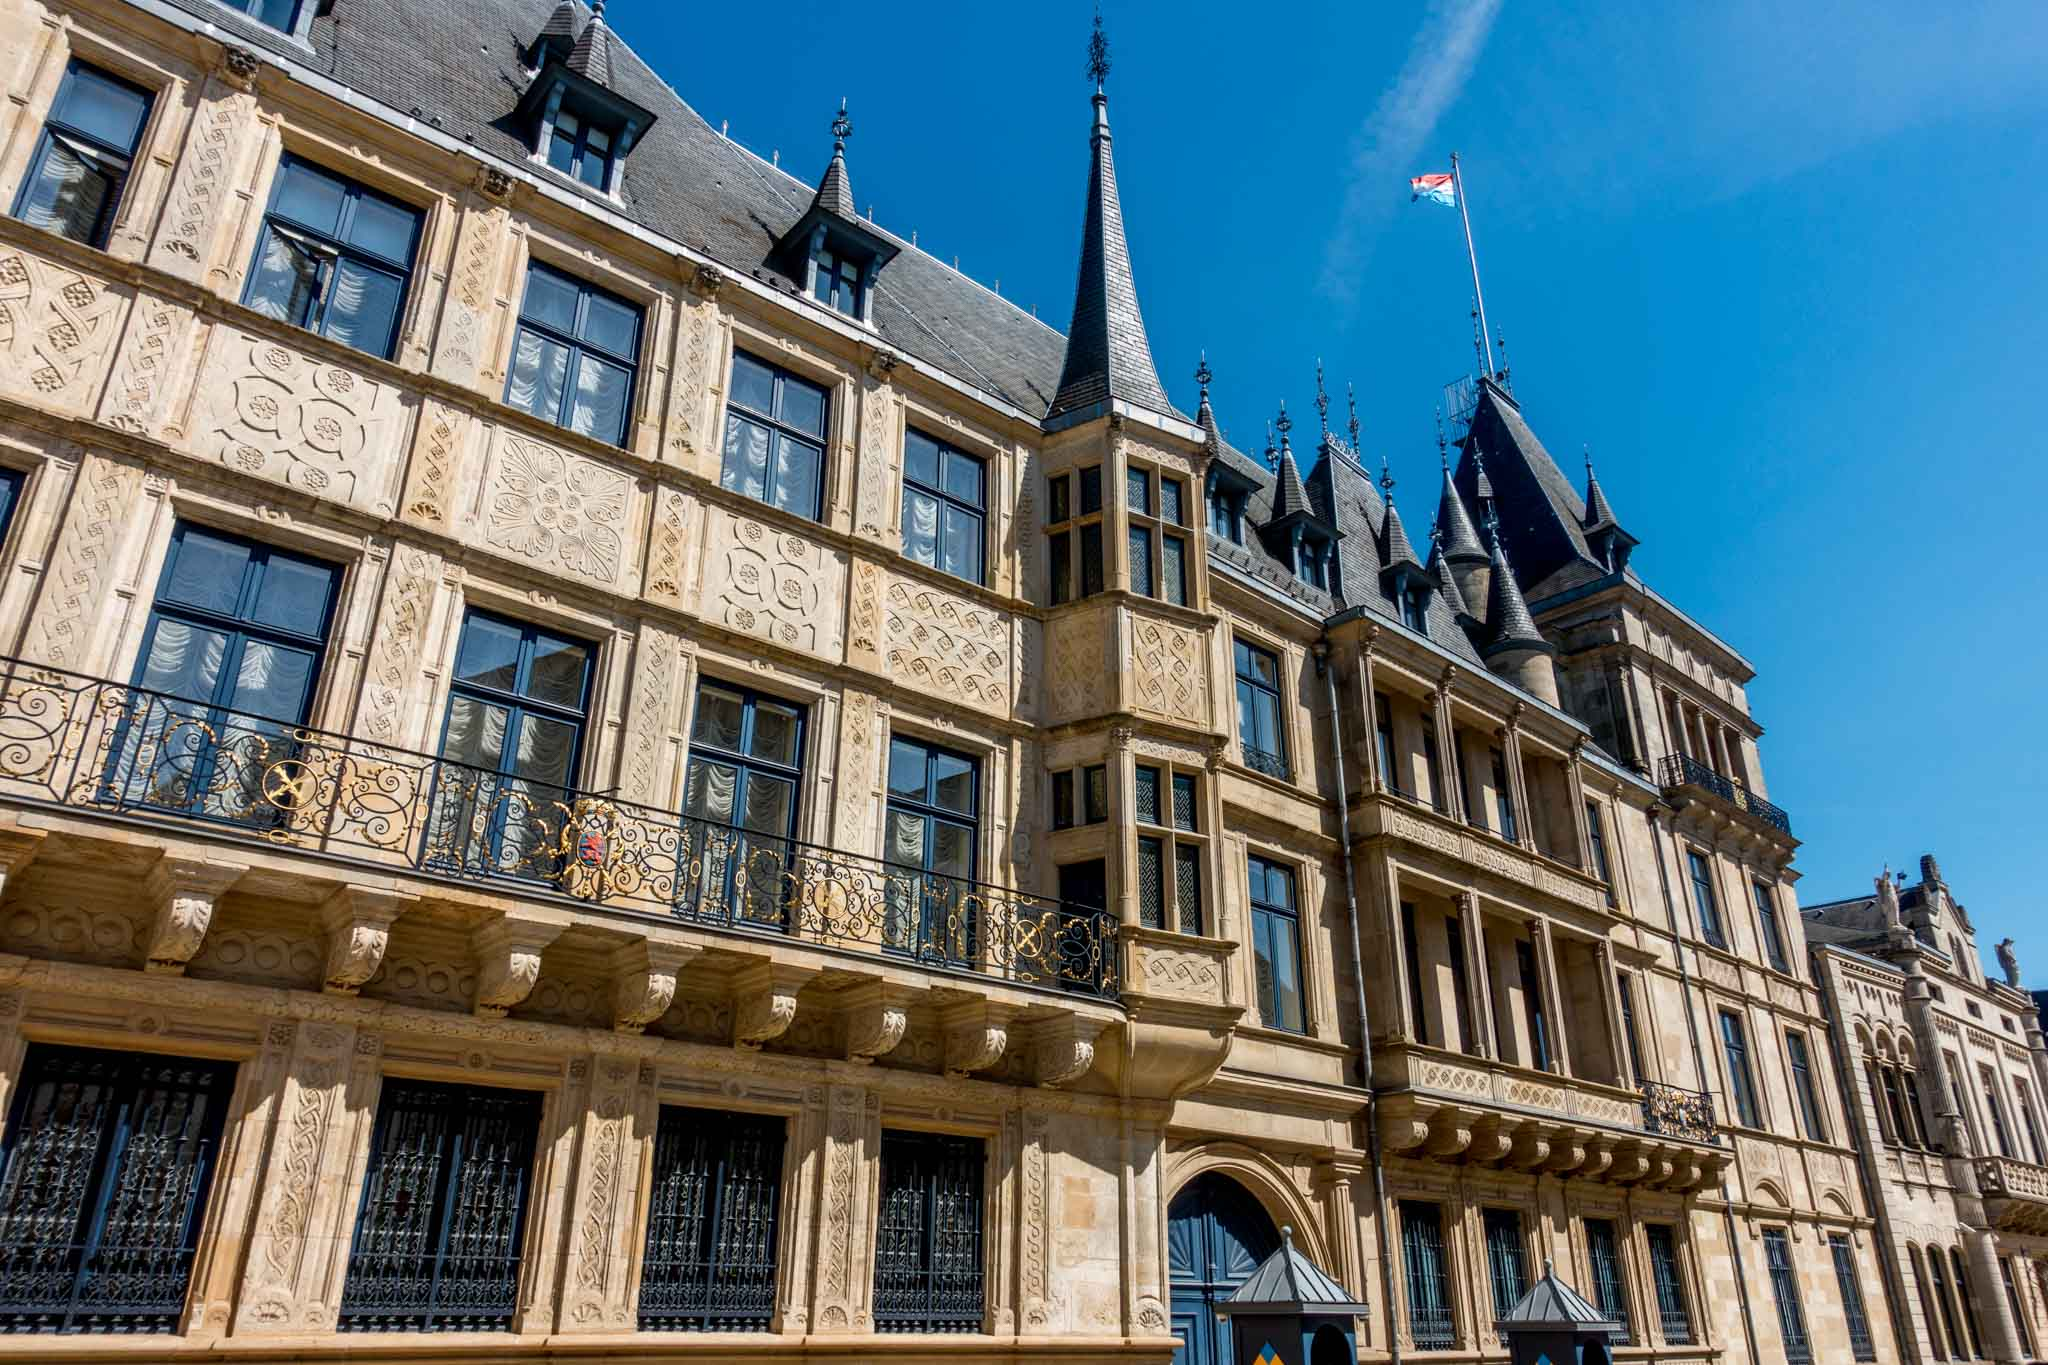 Visiting the Grand Duchal Palace is one of the most popular things to do in Luxembourg City in one day